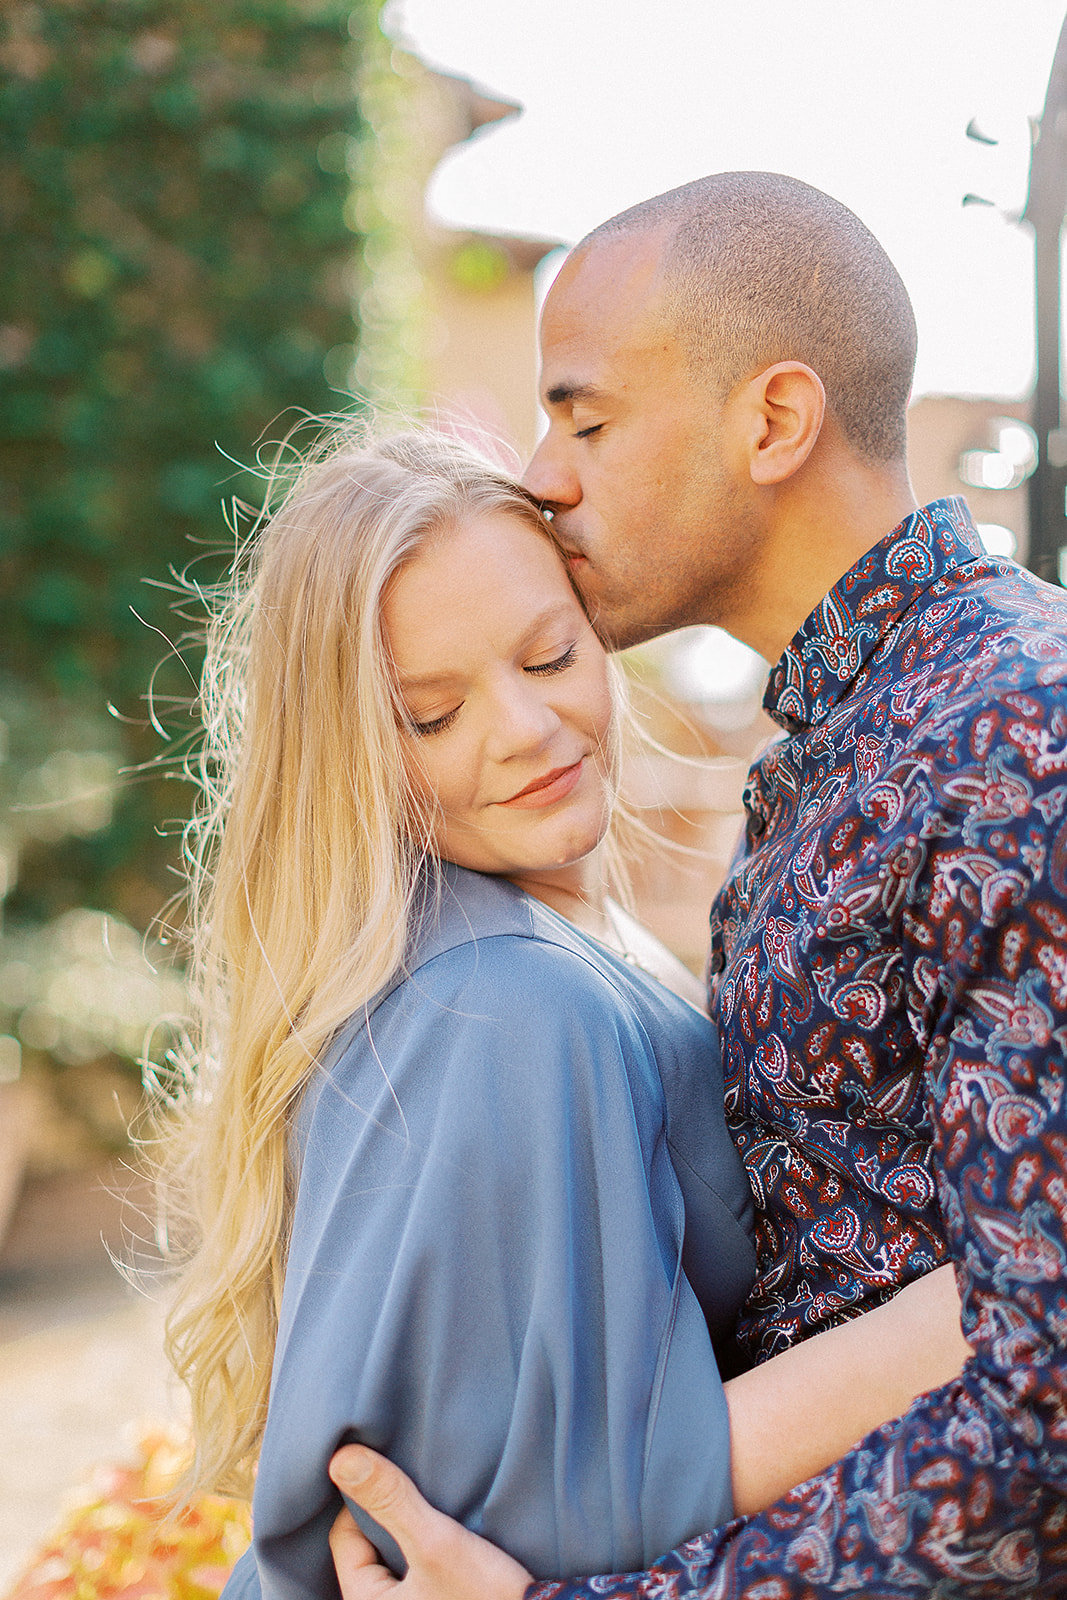 Rachel_+_Manny_Bello_Engagement_Session_Bella_Collina_Photographer_Casie_Marie_Photography-27